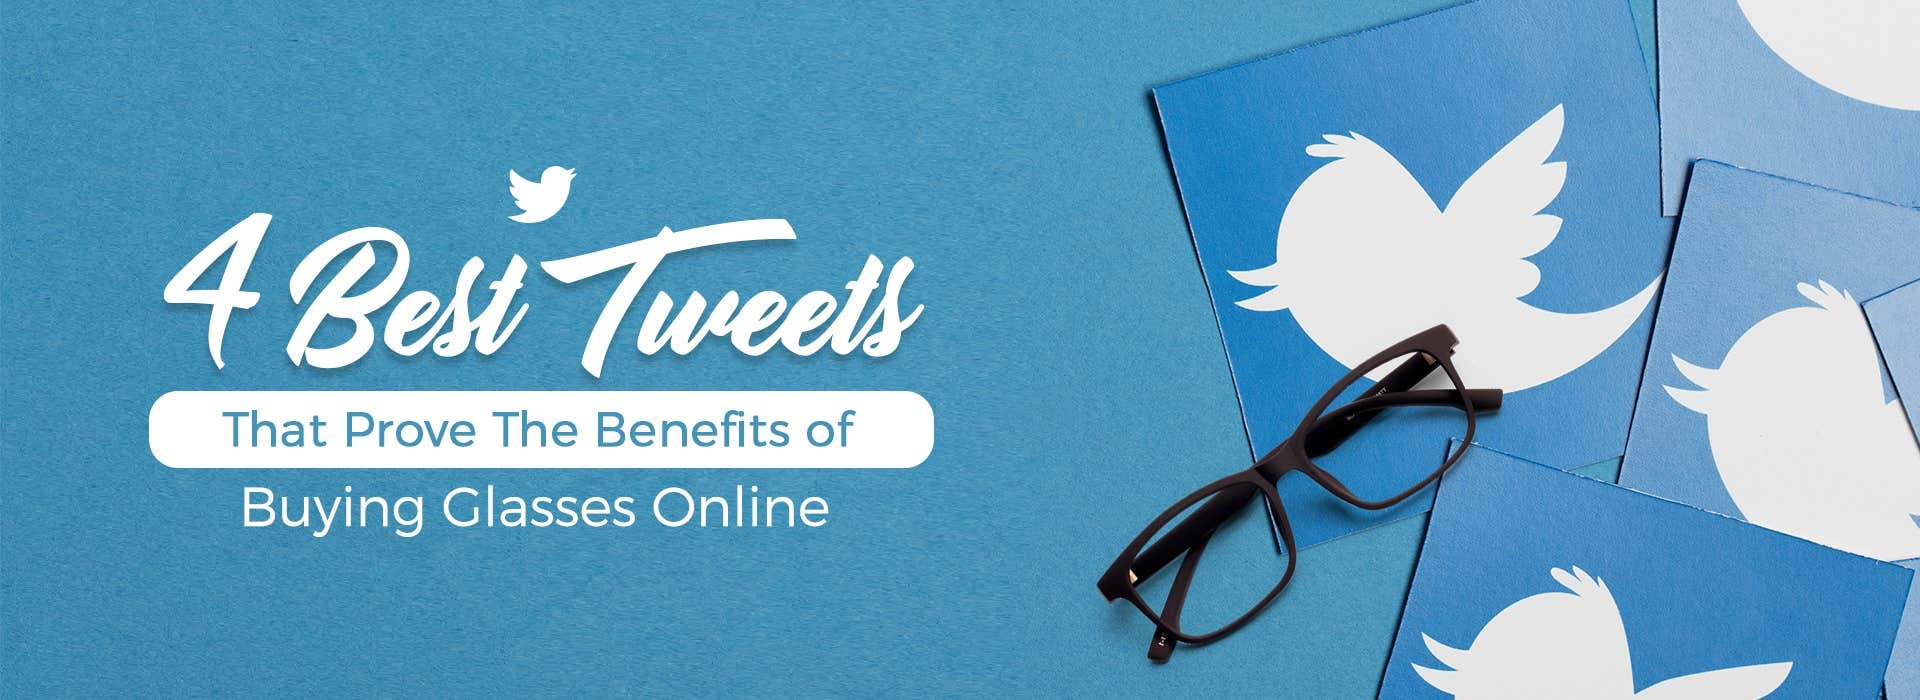 4 BEST TWEETS THAT PROVE THE BENEFITS OF BUYING GLASSES ONLINE